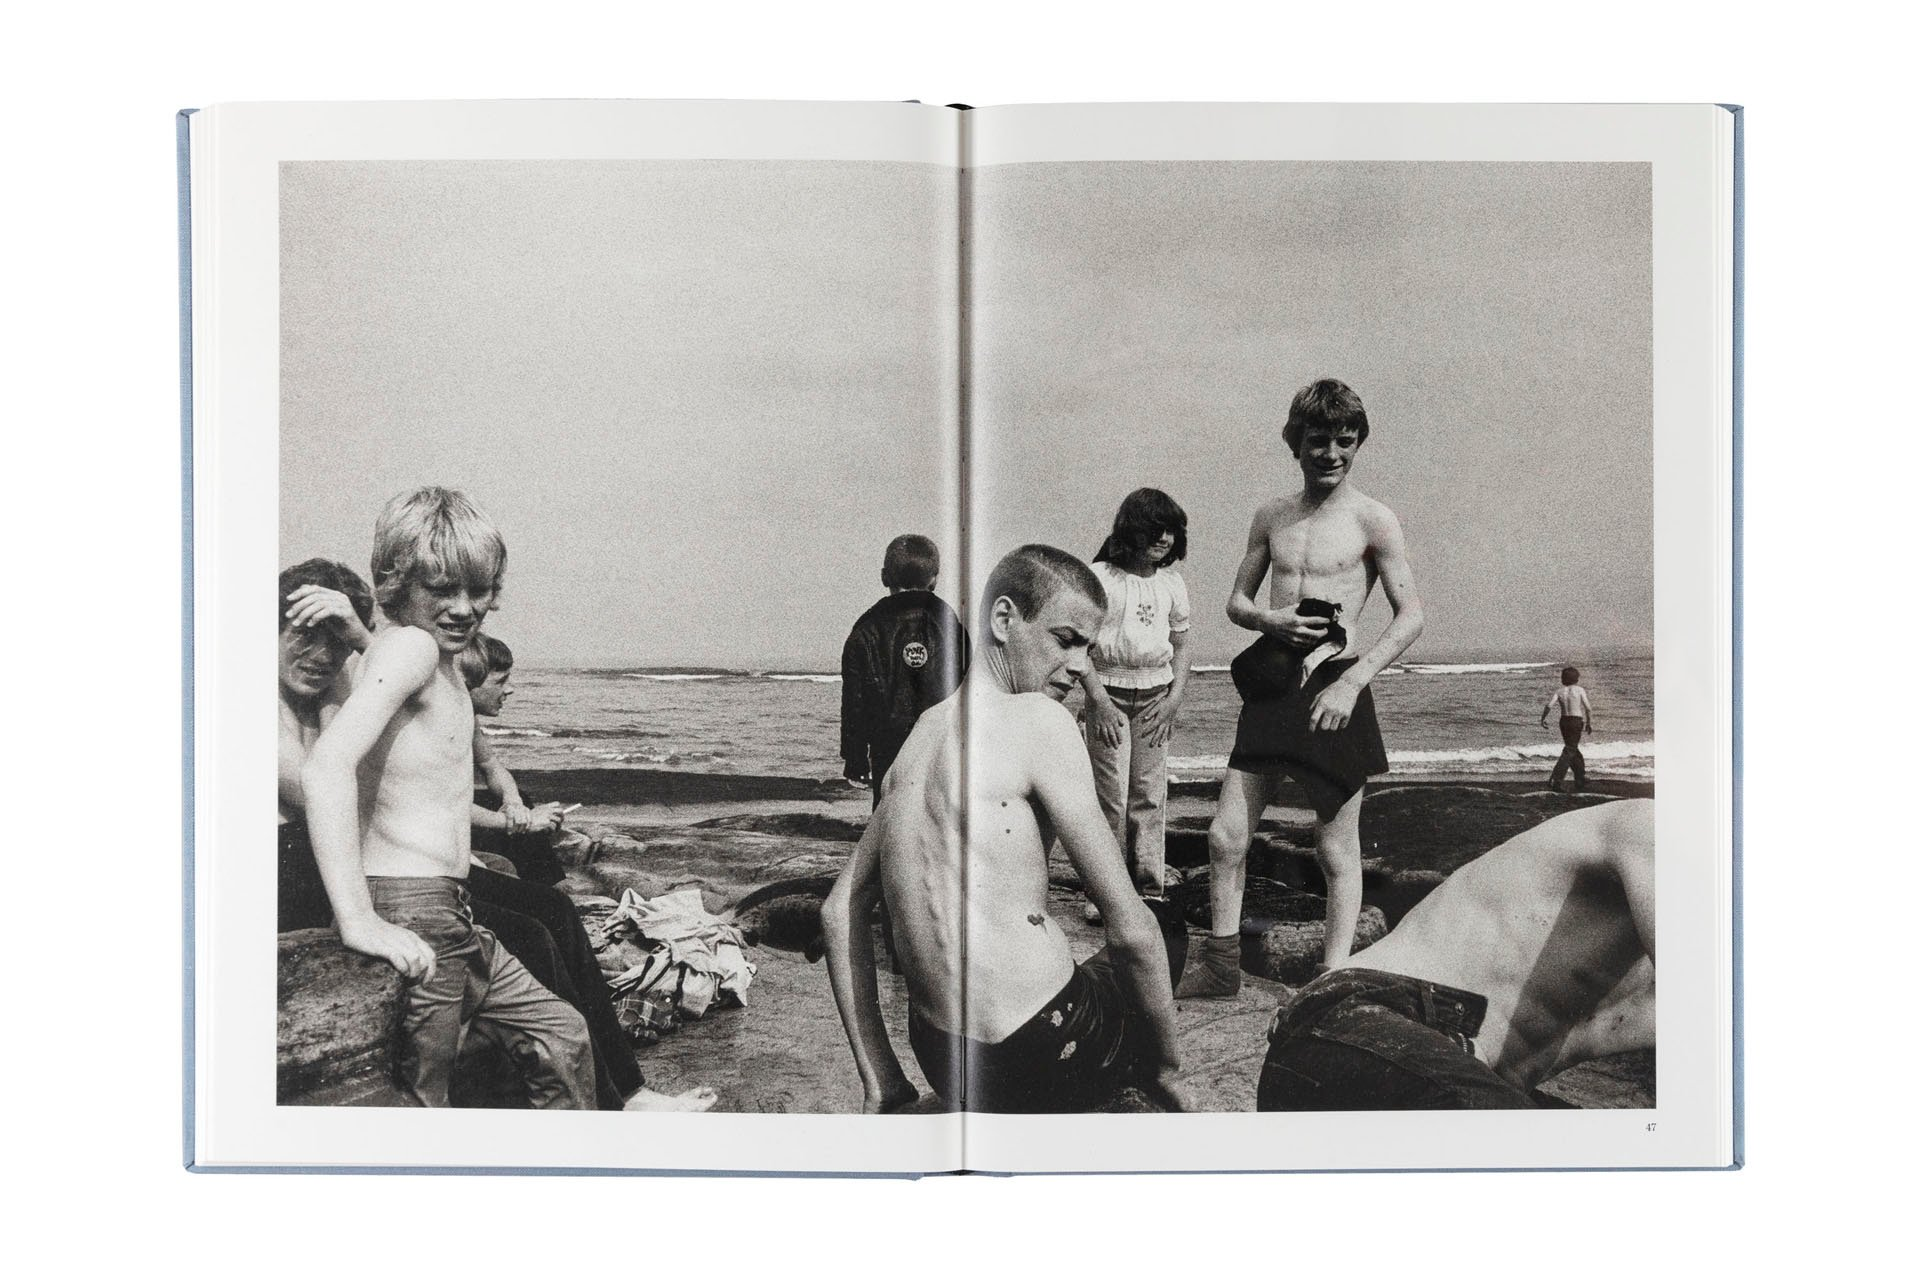 By The Sea by Marketa Luskacová, pub. by RRB Photobooks